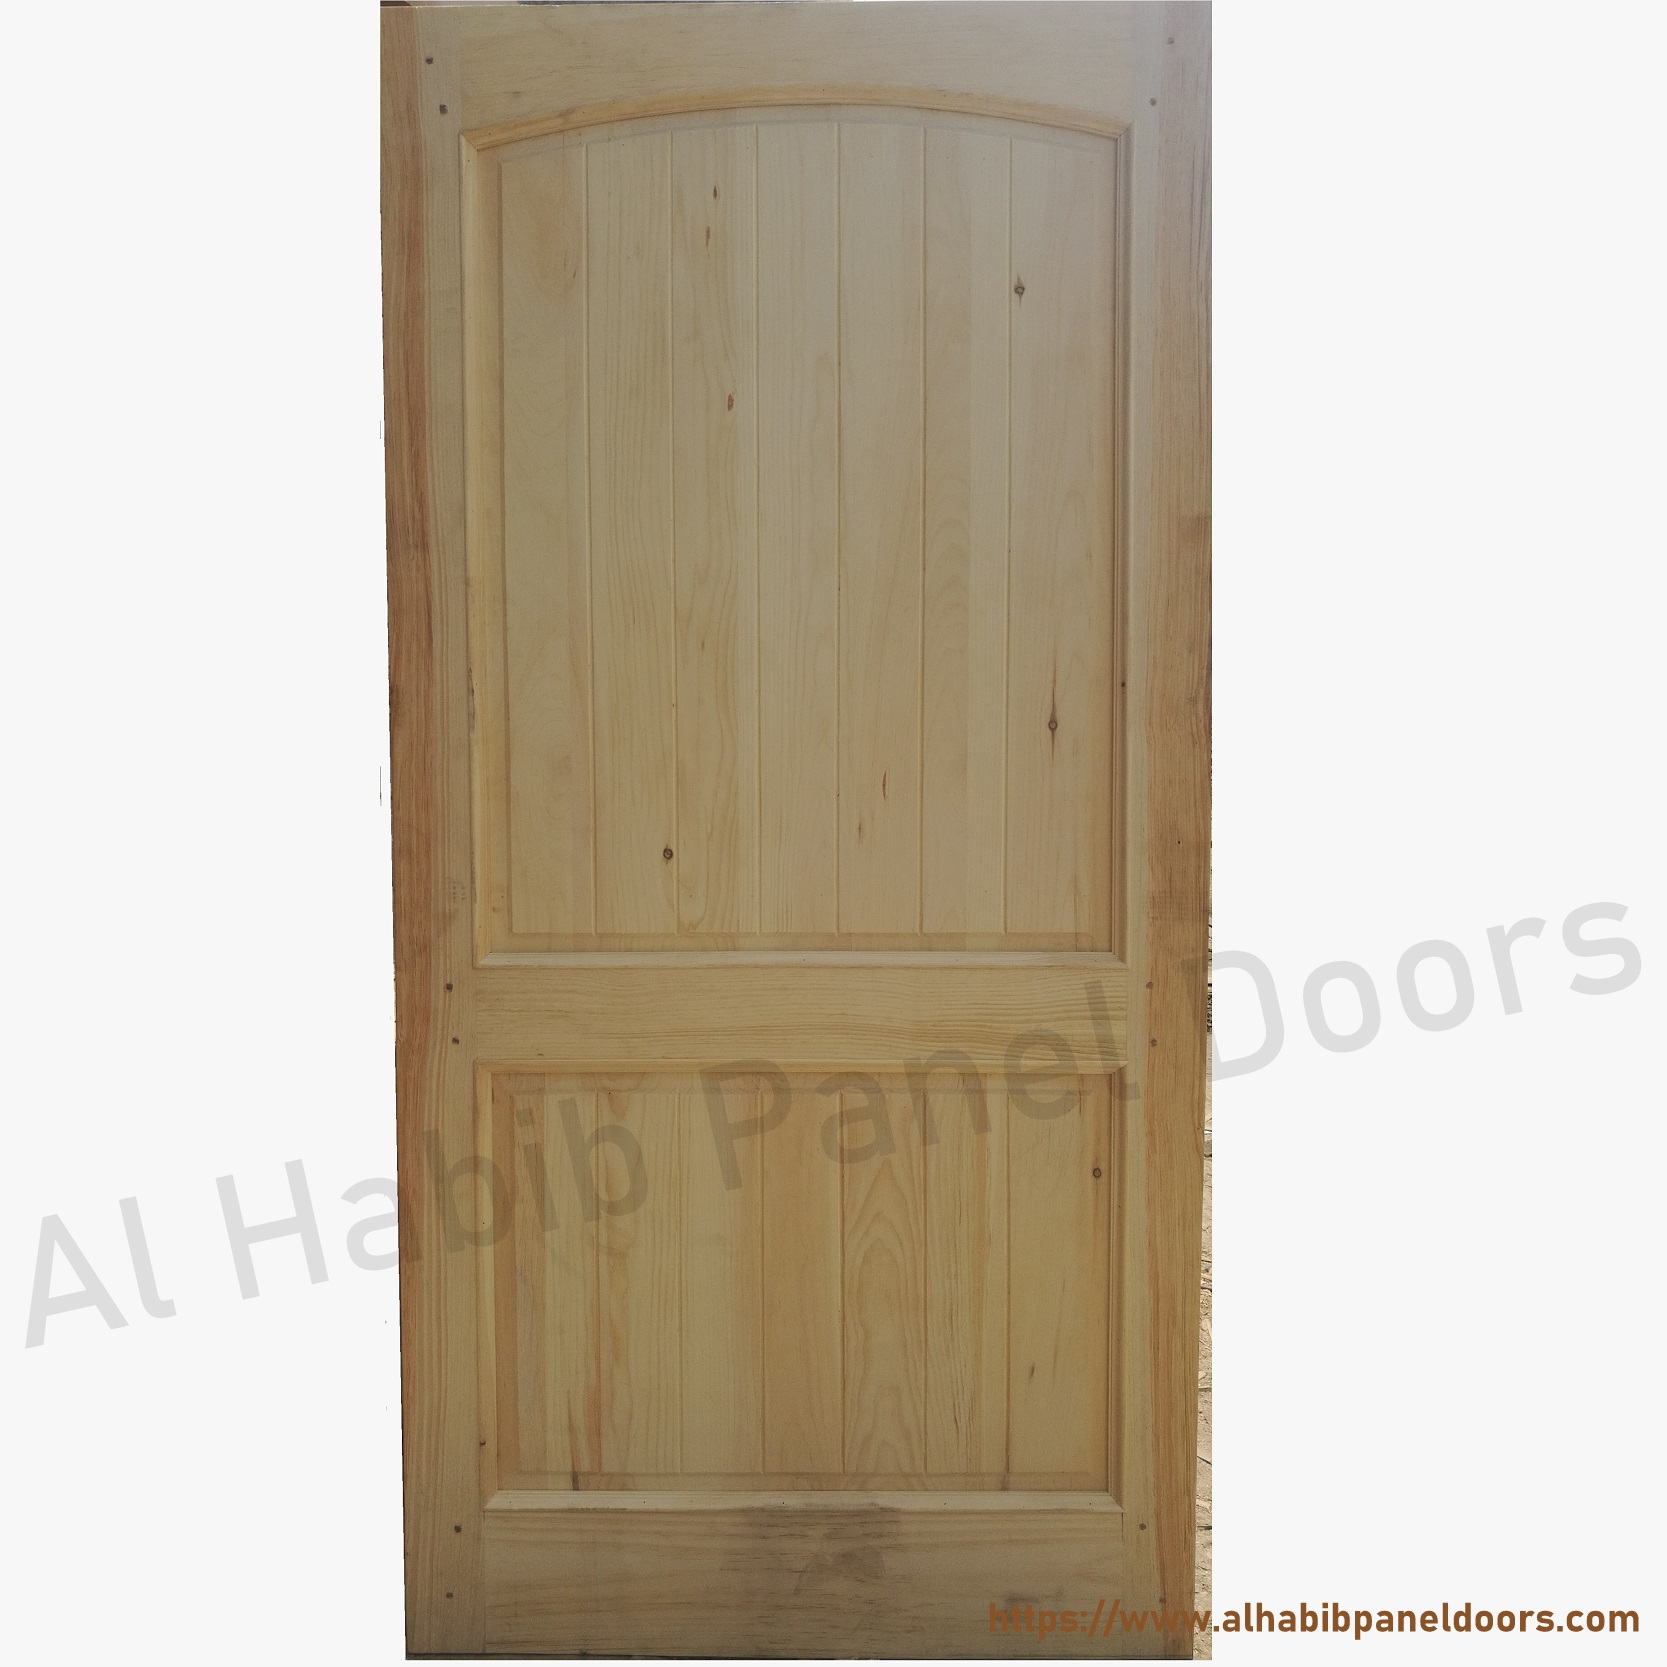 Diyar Solid Wood Door Hpd420 Solid Wood Doors Al Habib